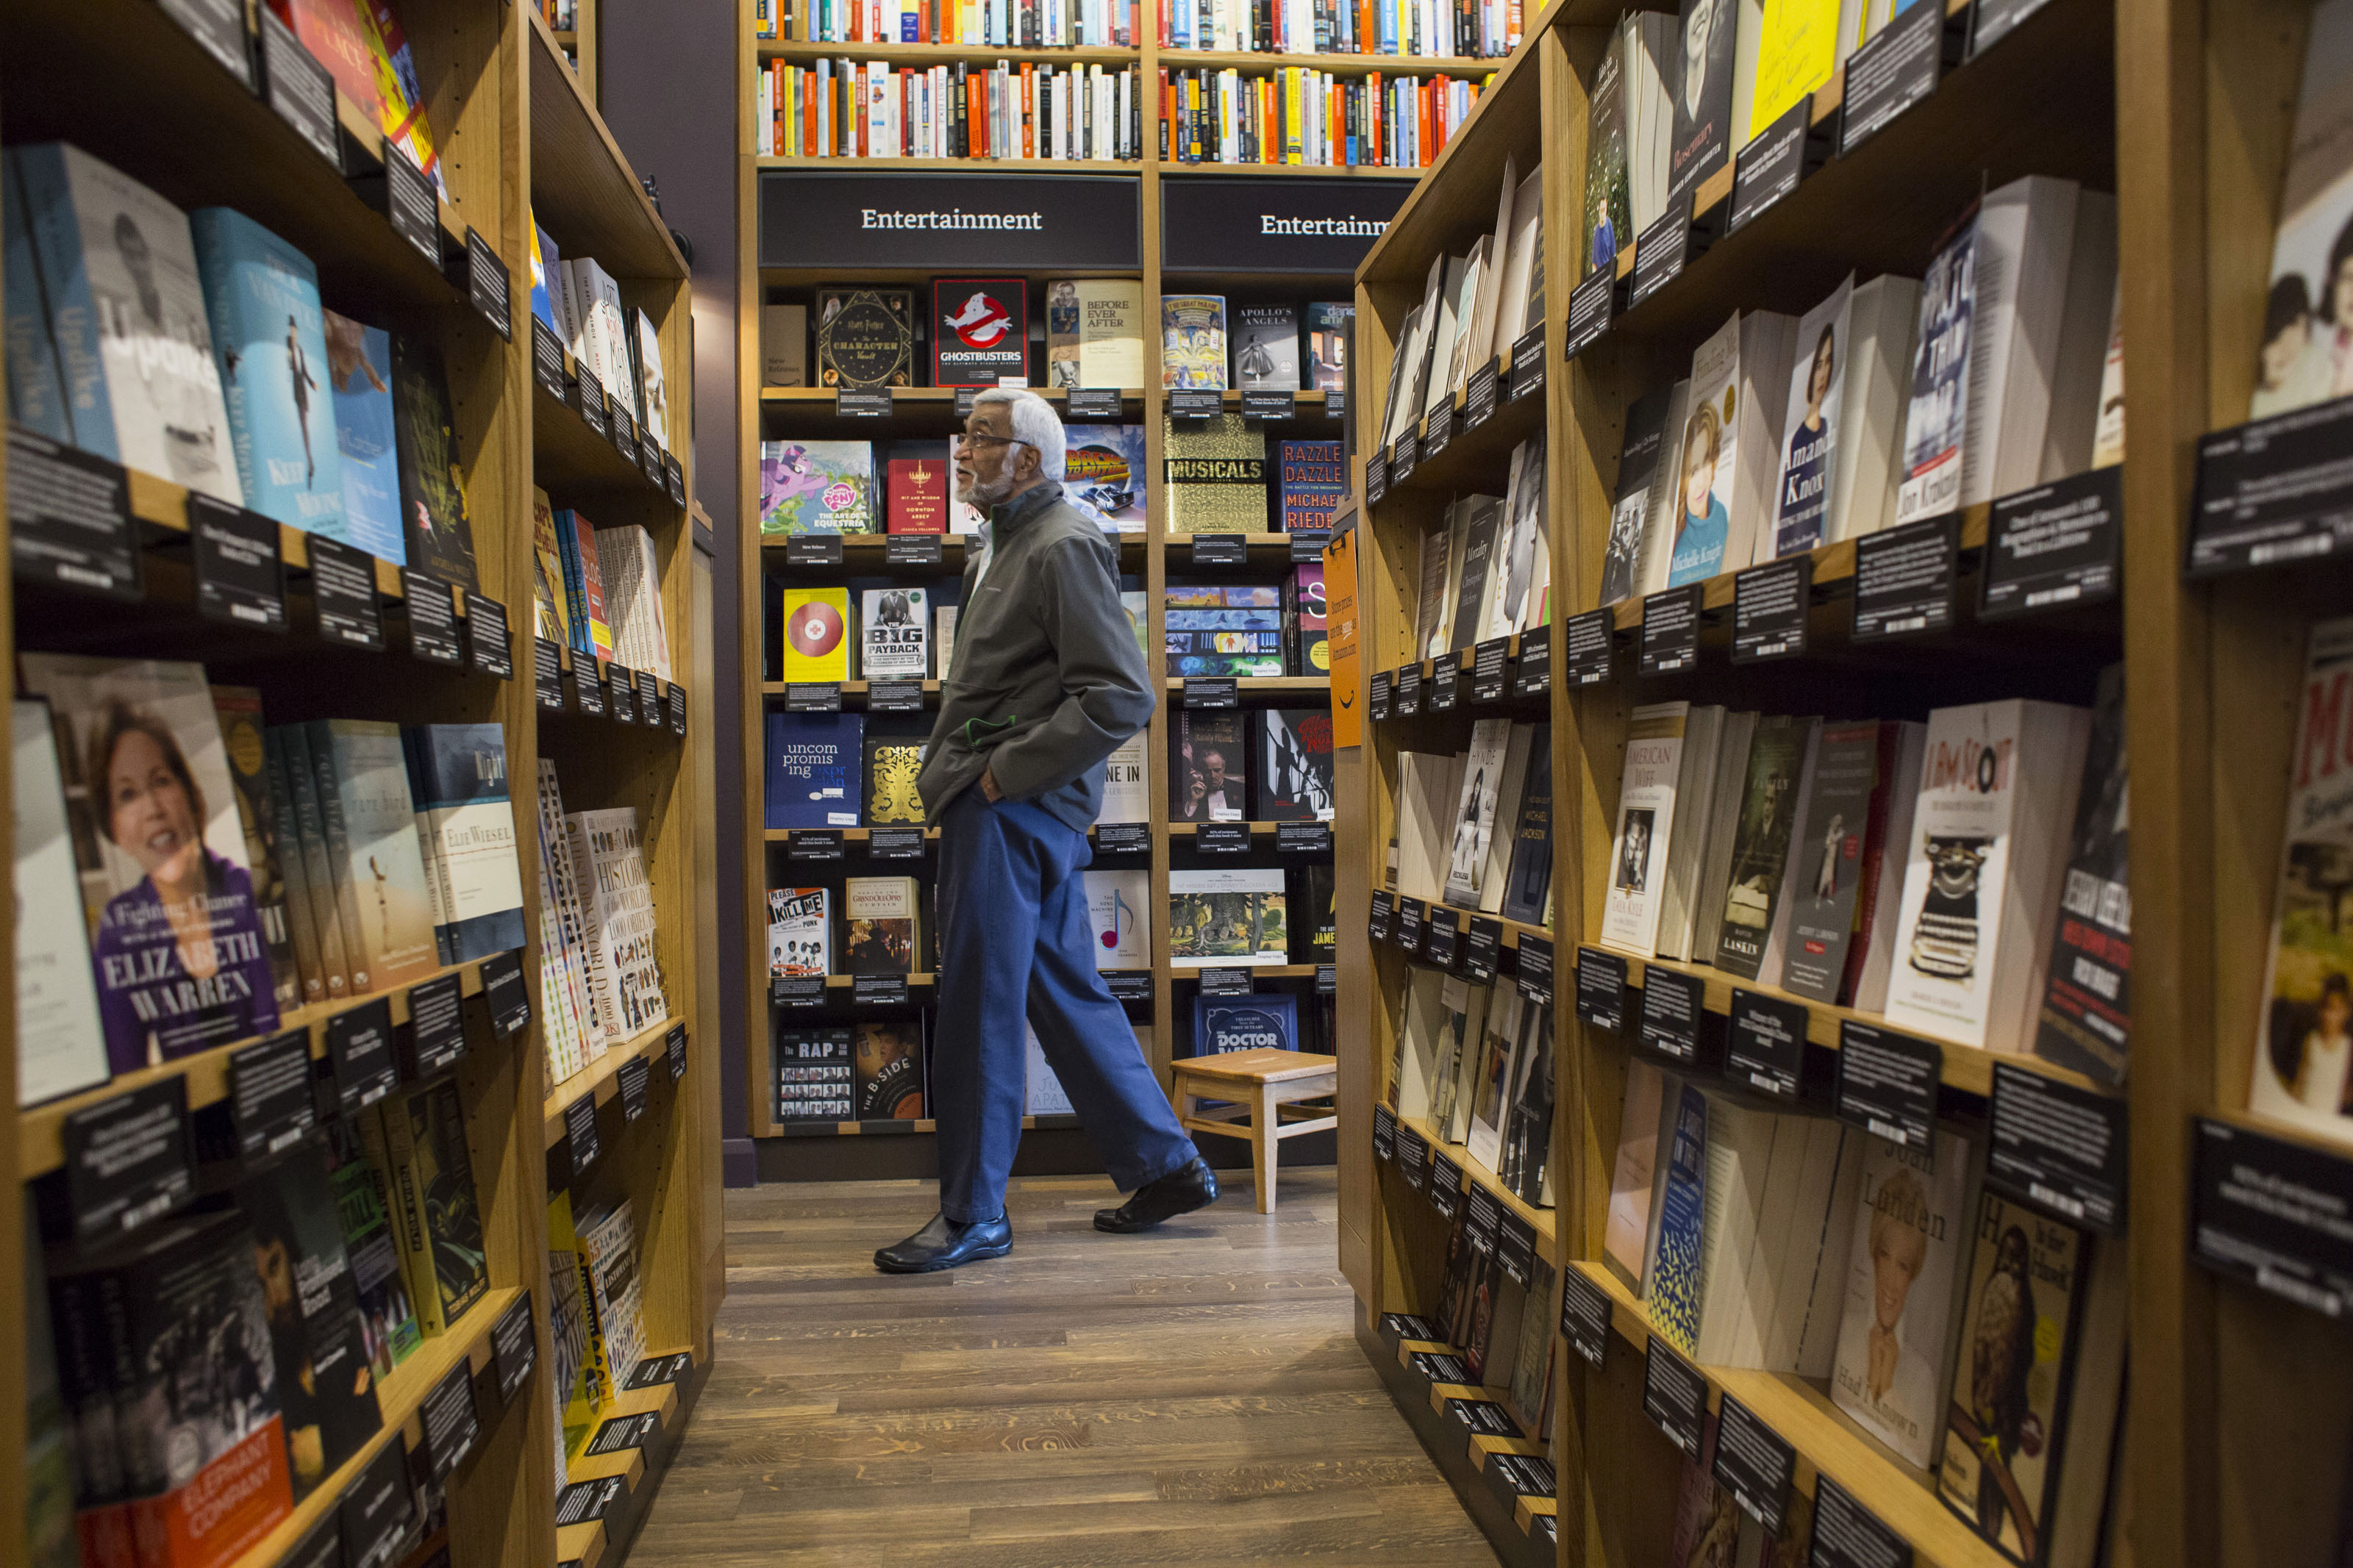 A customer shops at Amazon Books in Seattle, Washington, on Tuesday, Nov. 3, 2015. The online retailer Amazon.com Inc. opened its first brick-and-mortar location in Seattle's upscale University Village mall. Photographer: David Ryder/Bloomberg